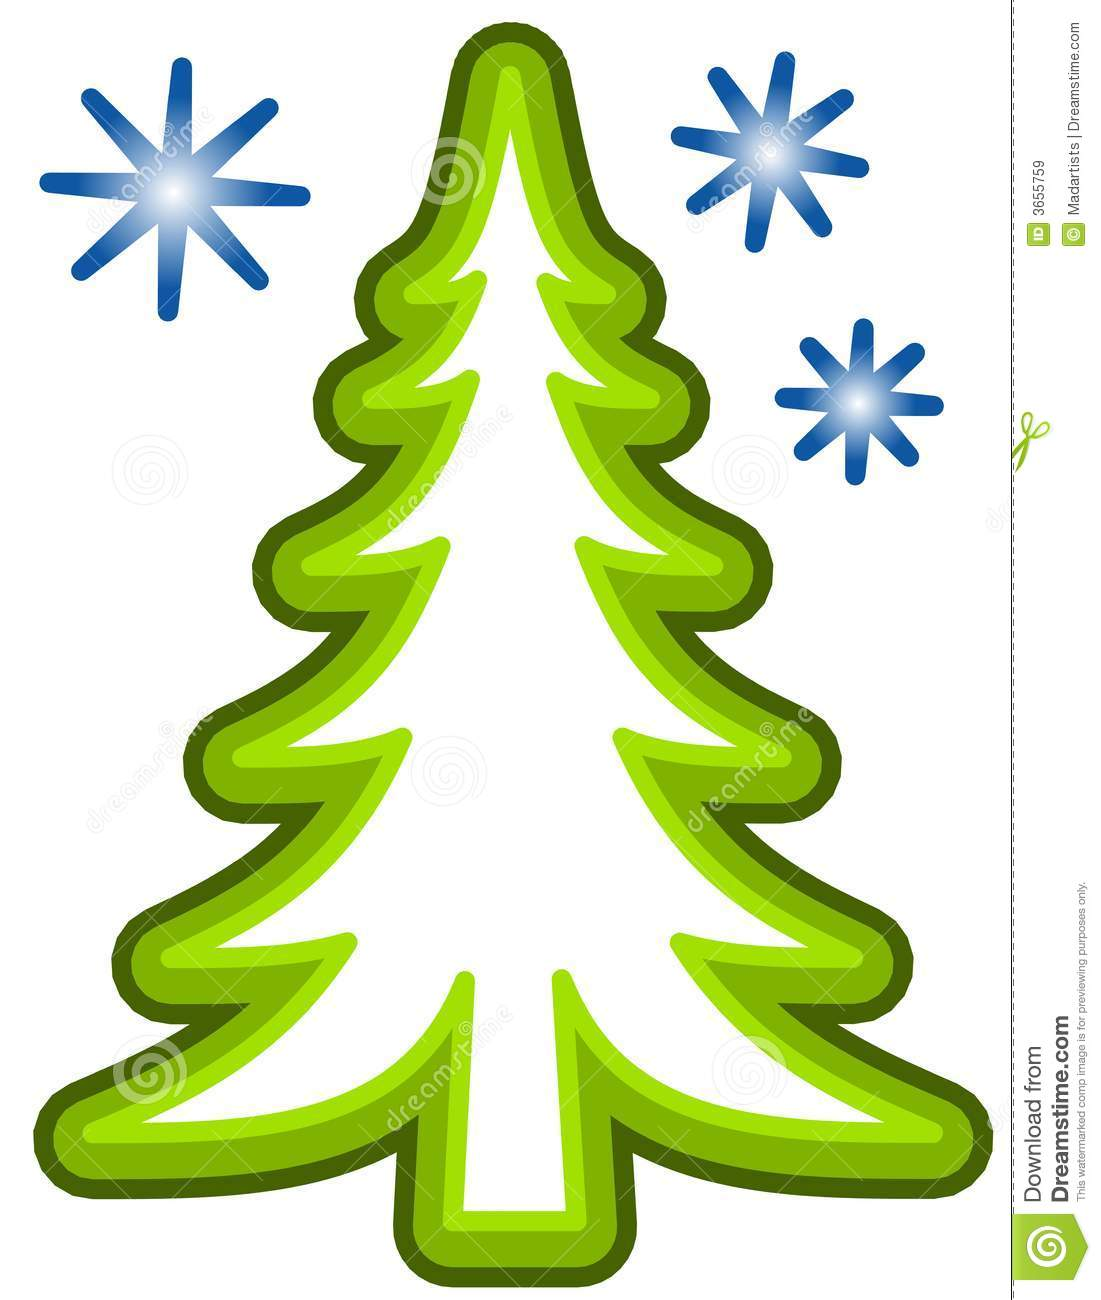 Simple Christmas Tree Clip Art Royalty Free Stock Images - Image ...